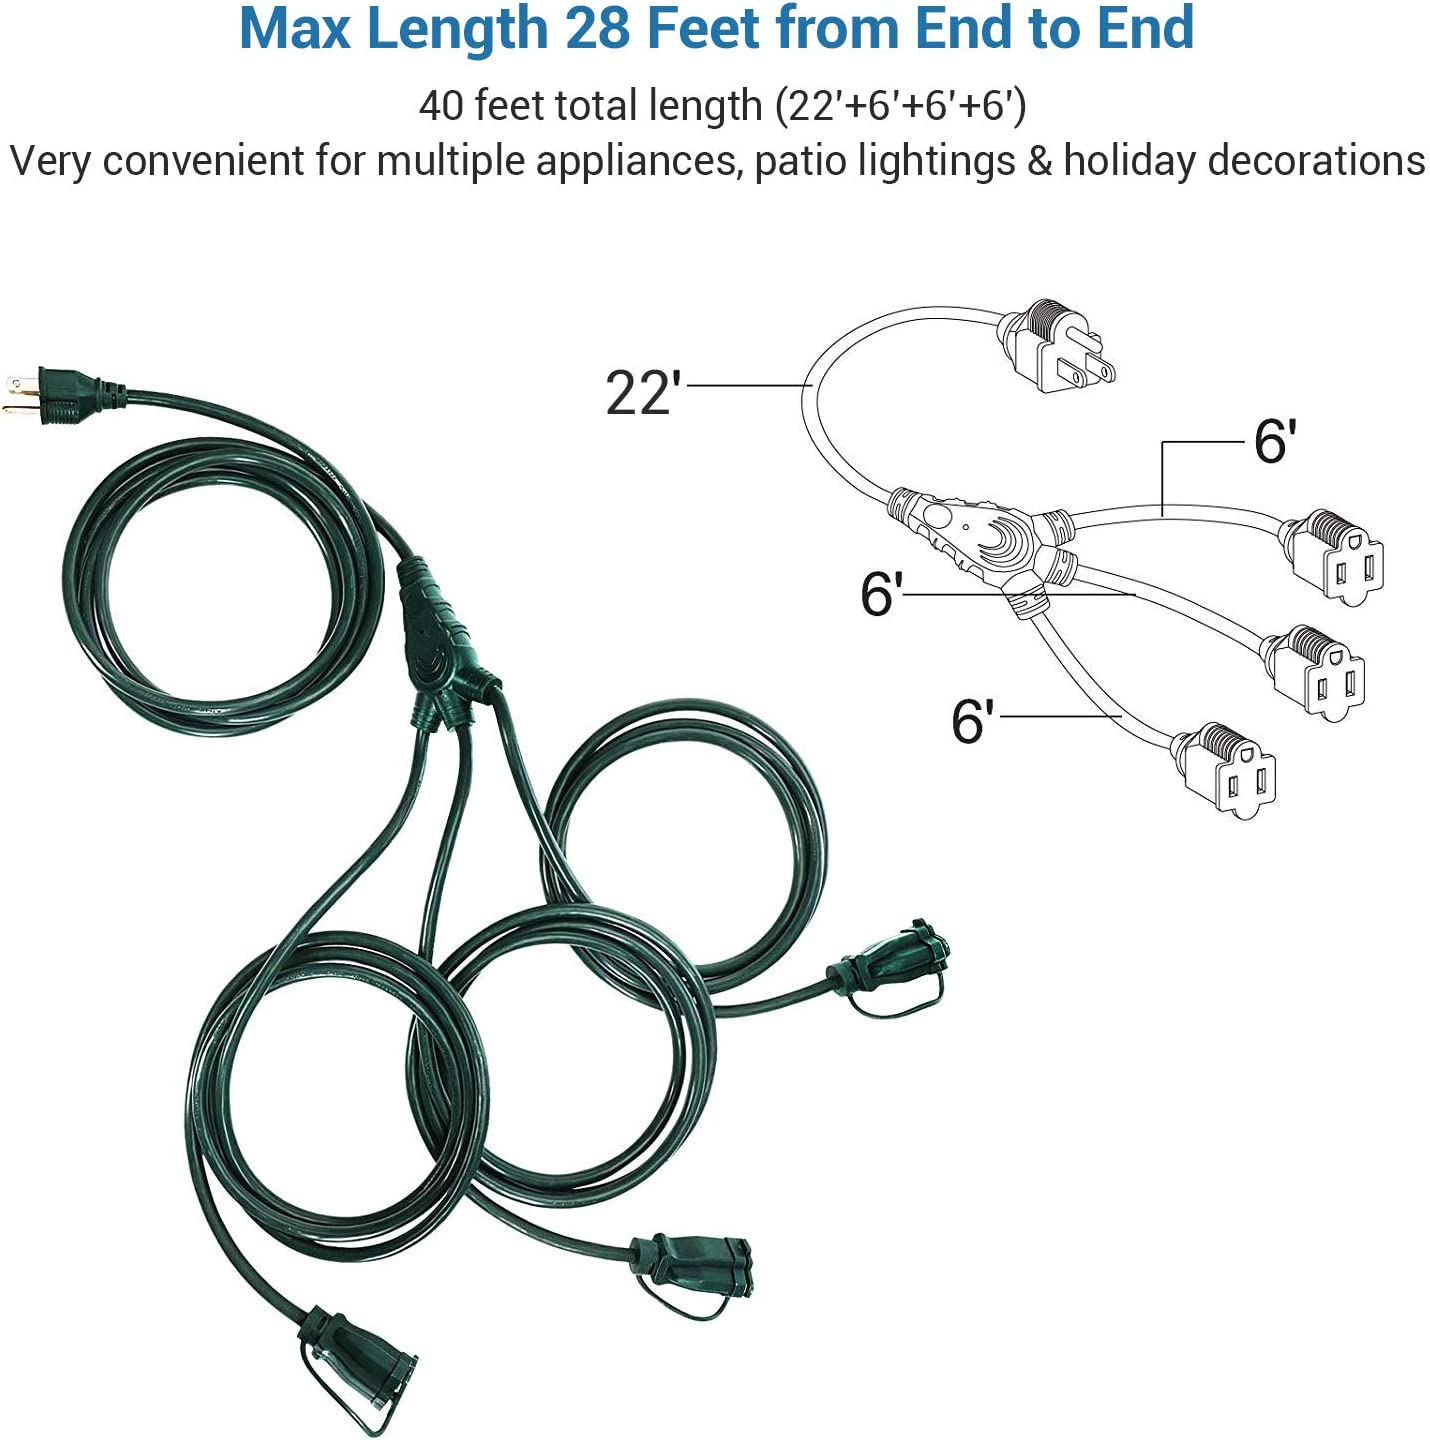 3 Prong Extension Cord Wiring Diagram from images-na.ssl-images-amazon.com